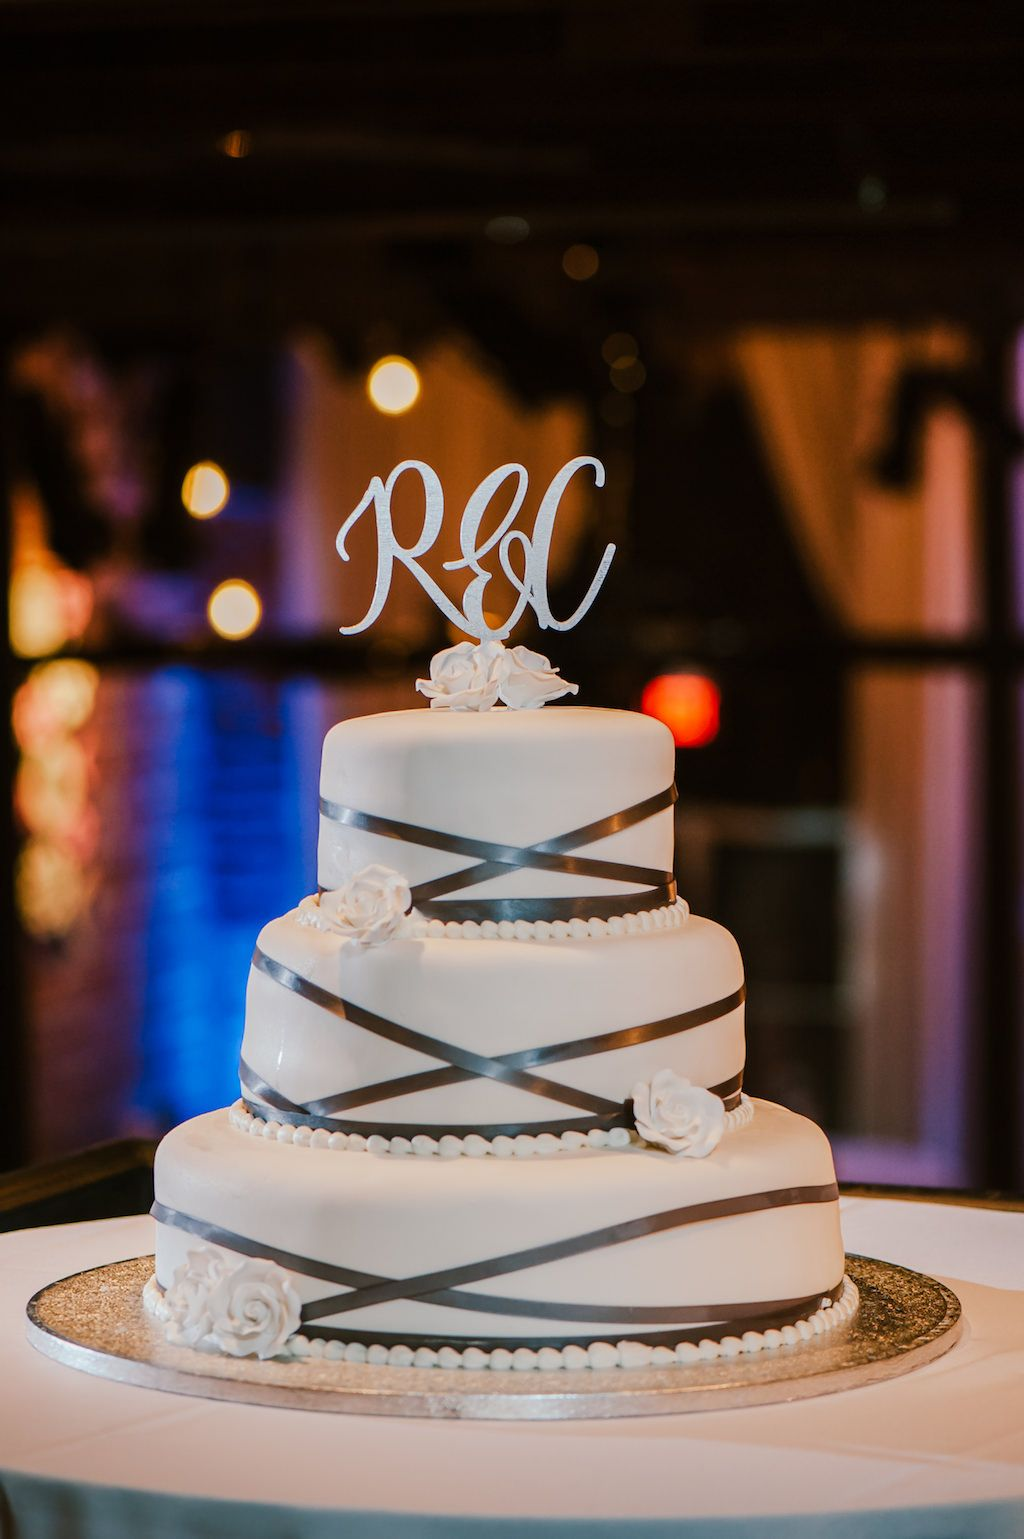 White wedding cake with ribbon icing and laser cut topper